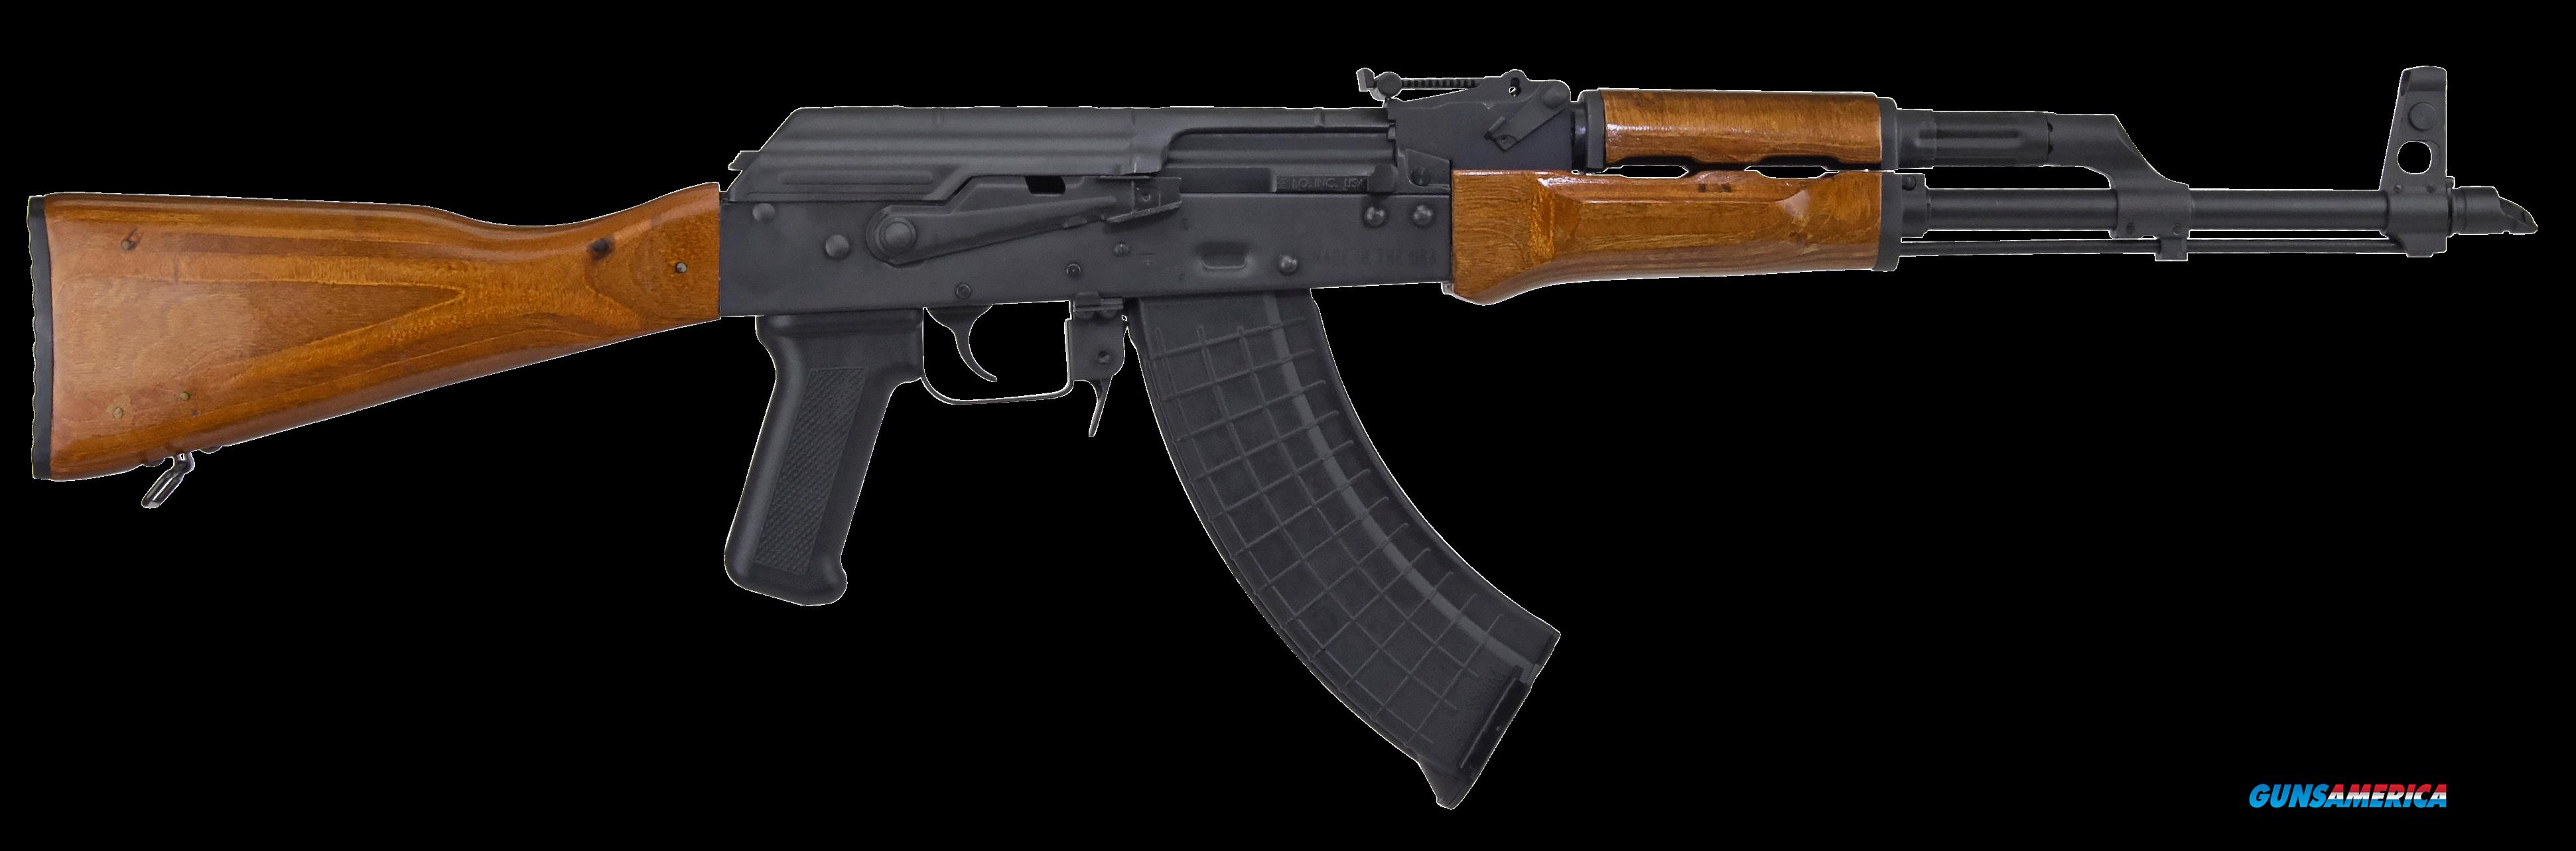 "I.O. IODM2009 AKM247 Classic Semi-Automatic 7.62x39mm 16.5"" 30+1 Underfold Laminate Wood Stk Black  Guns > Rifles > AK-47 Rifles (and copies) > Folding Stock"